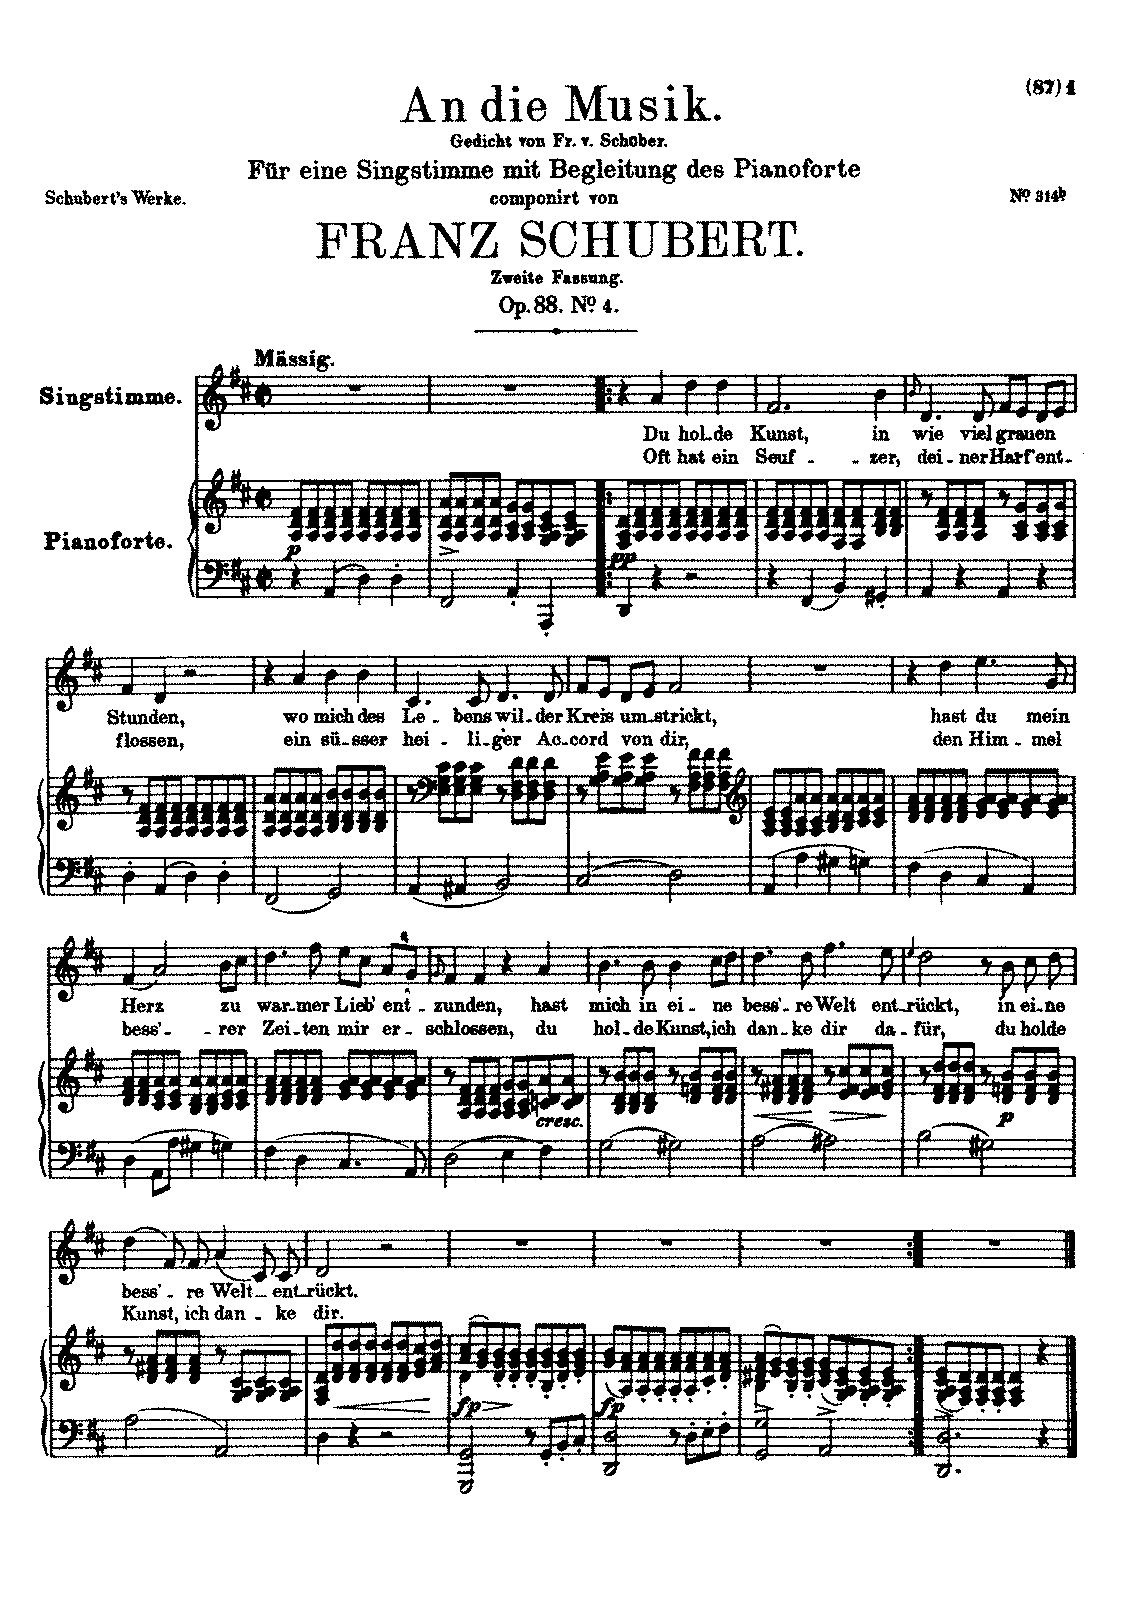 SchubertD547 An die Musik 2nd version.pdf